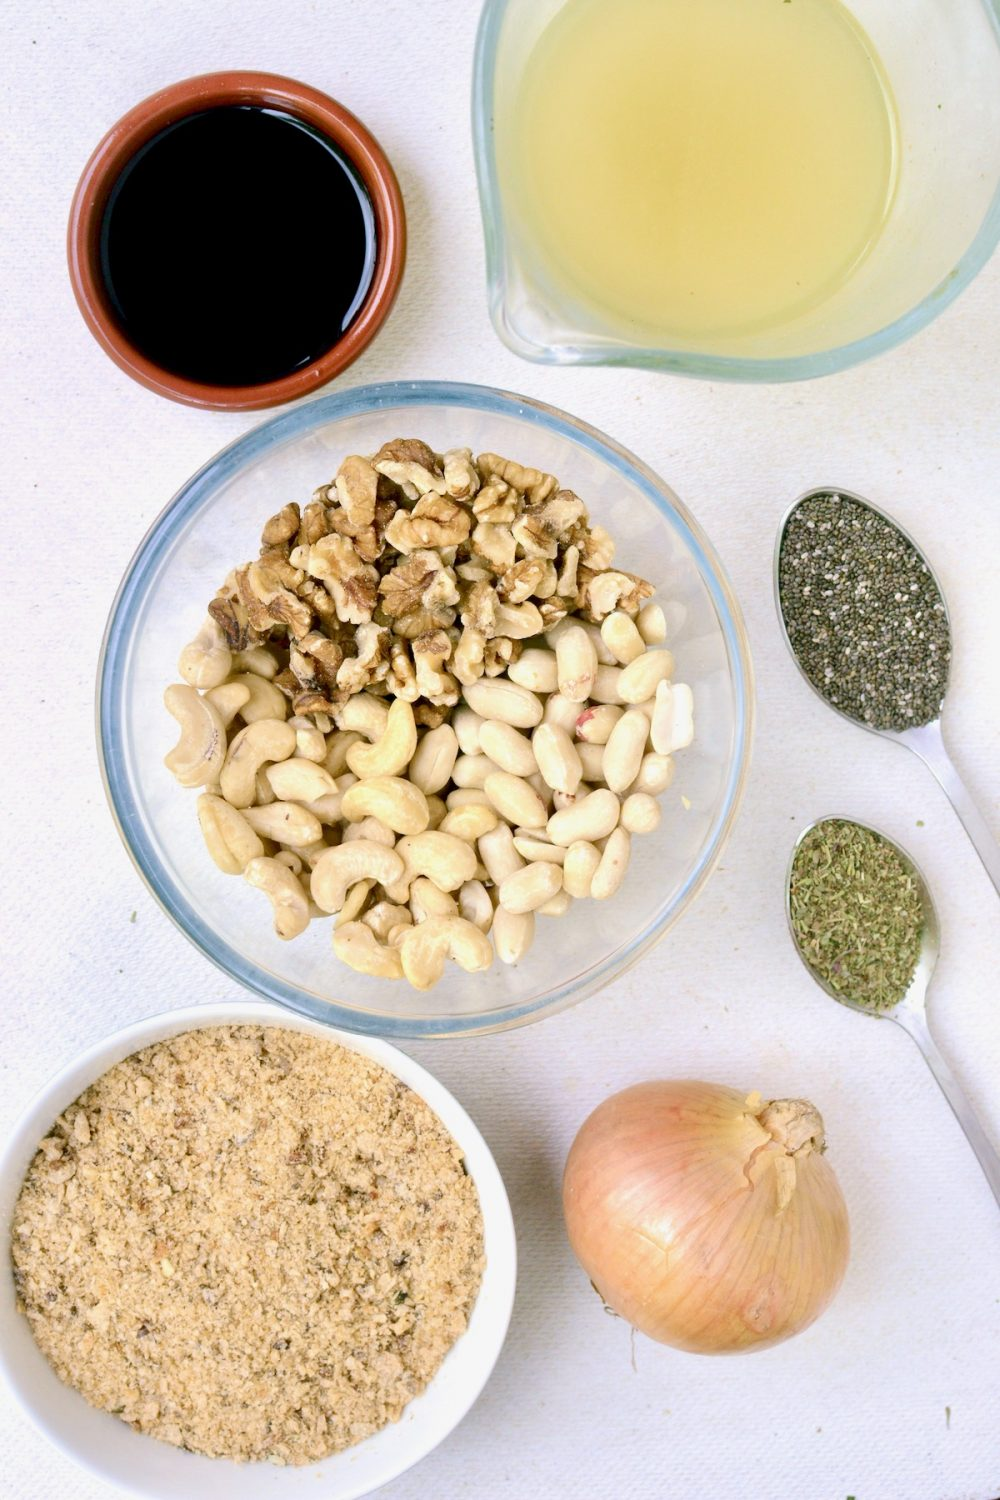 The ingredients for the vegan nut burger patties: Mixed nuts, bread crumbs, an onion, dried herbs, chia seeds, soy sauce and vegetable bouillon.